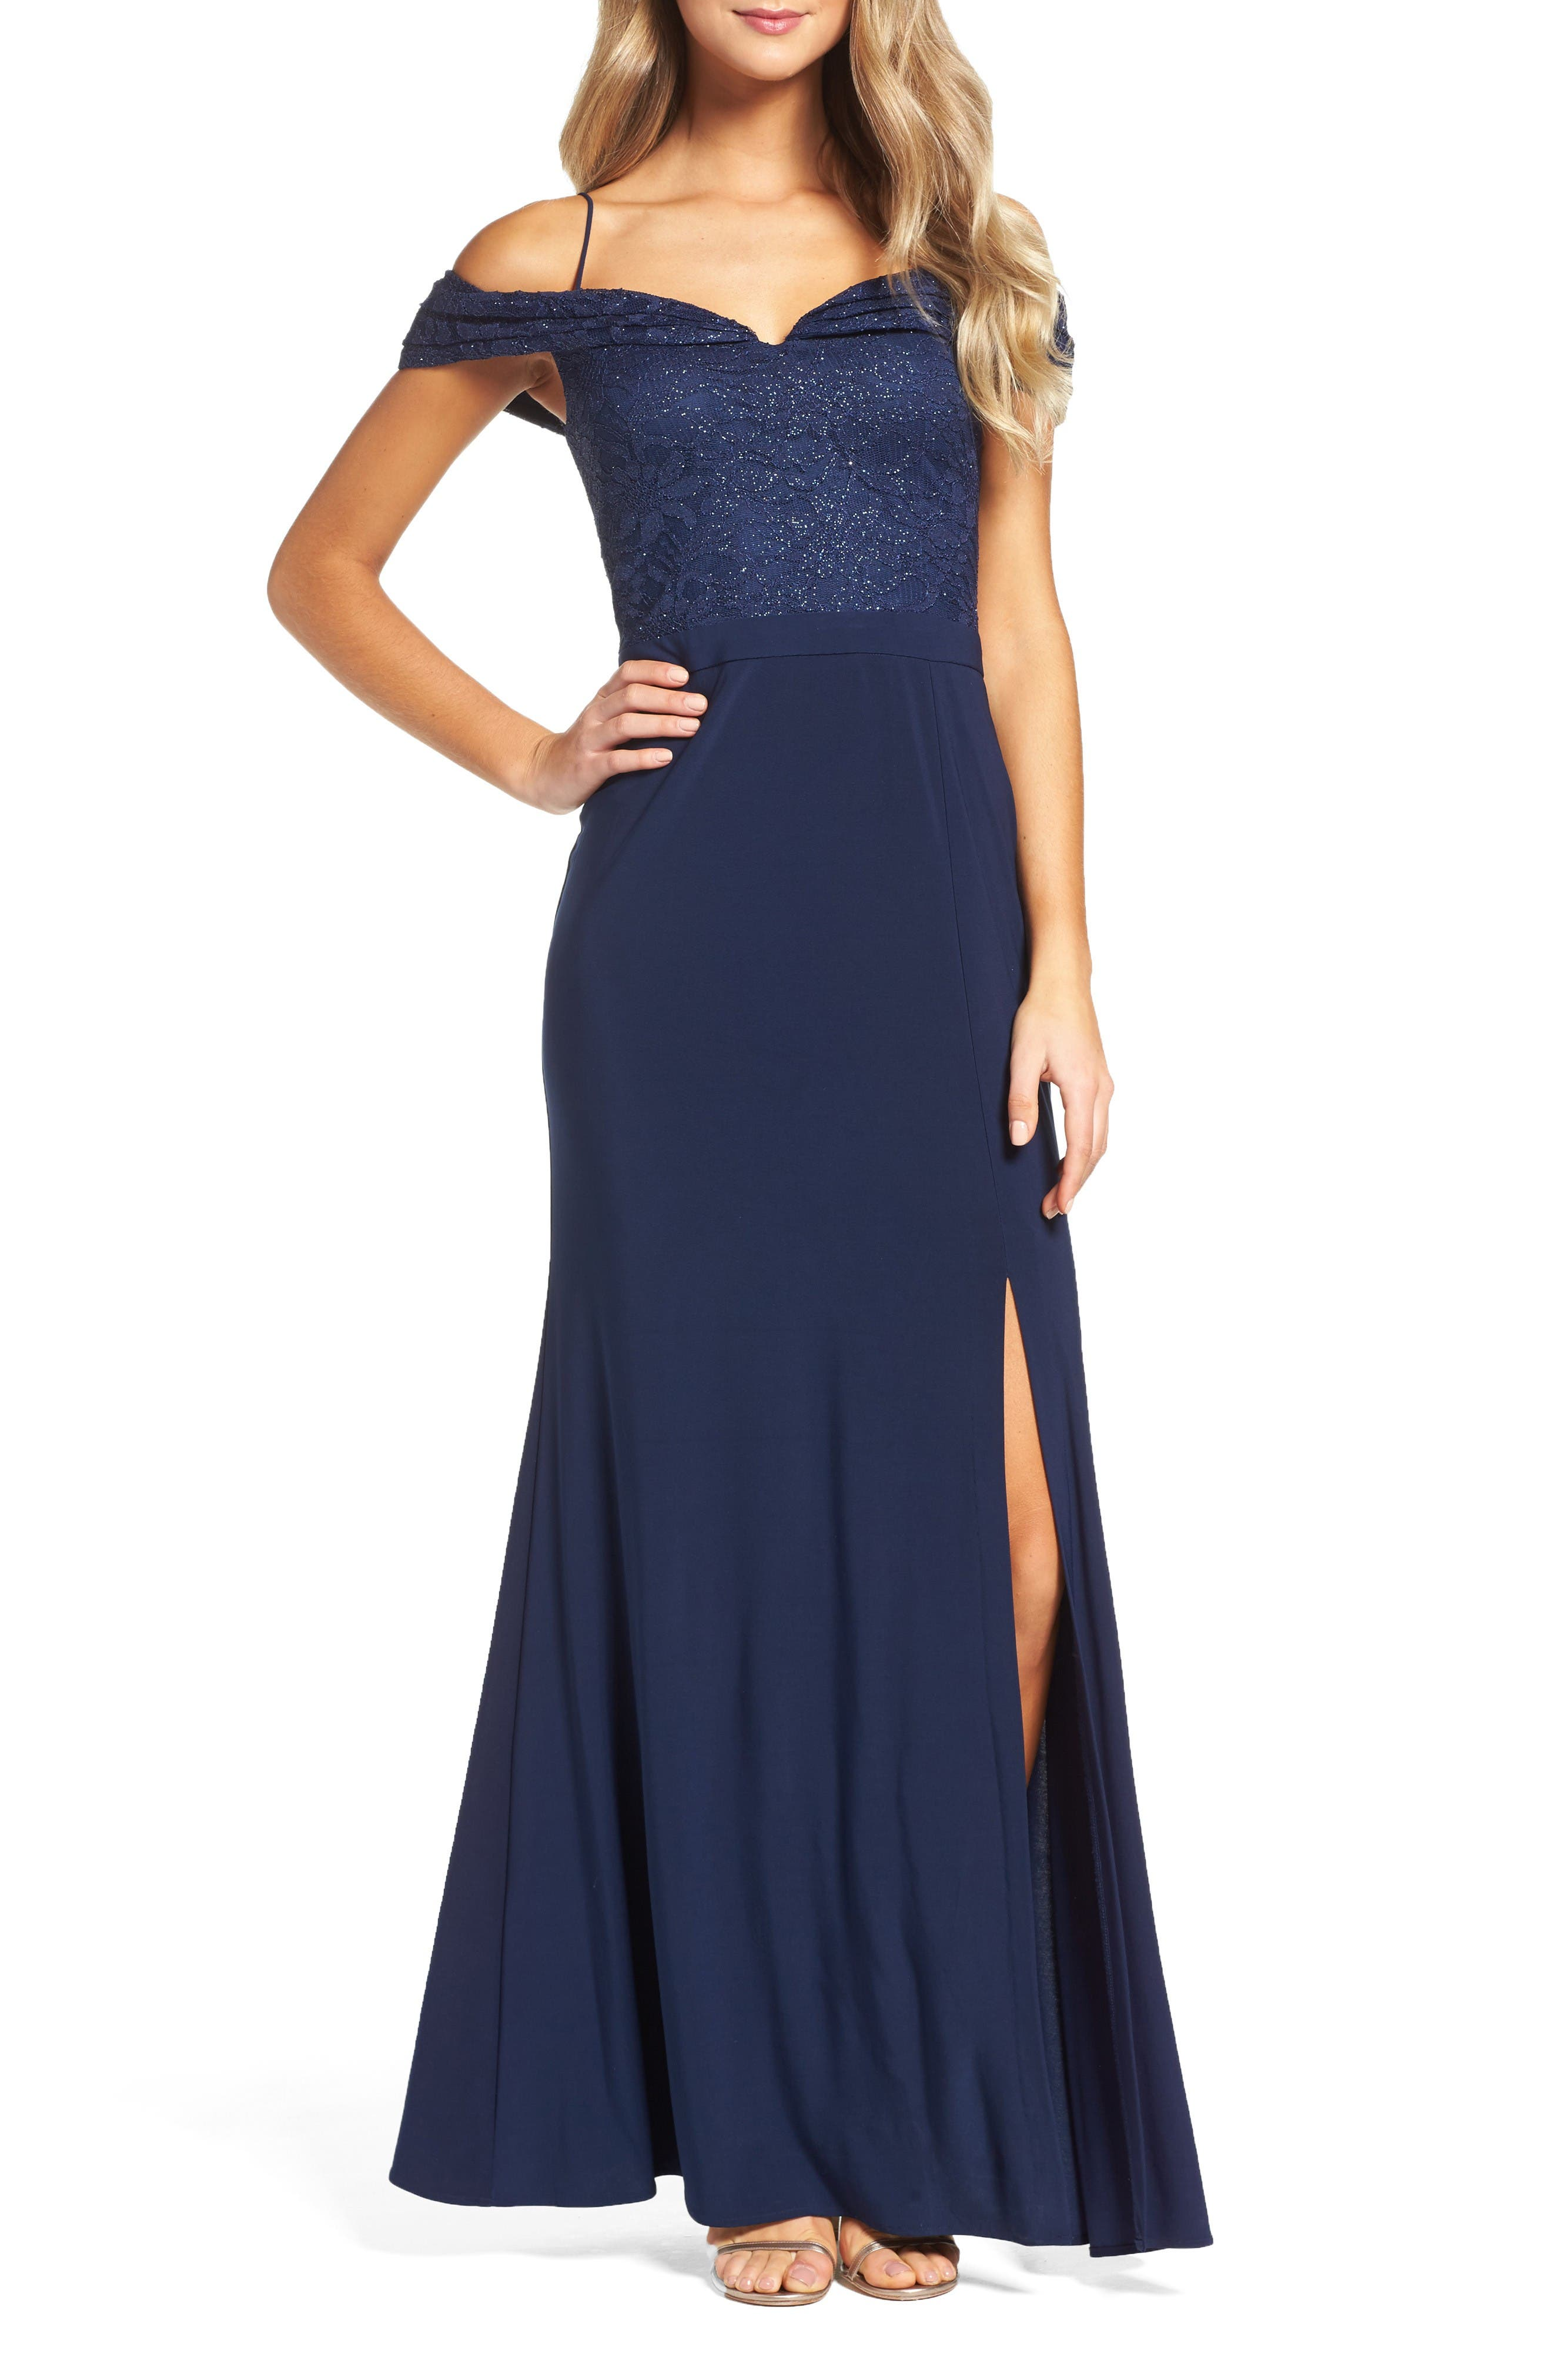 Main Image - Morgan & Co. Sparkle Off the Shoulder Gown